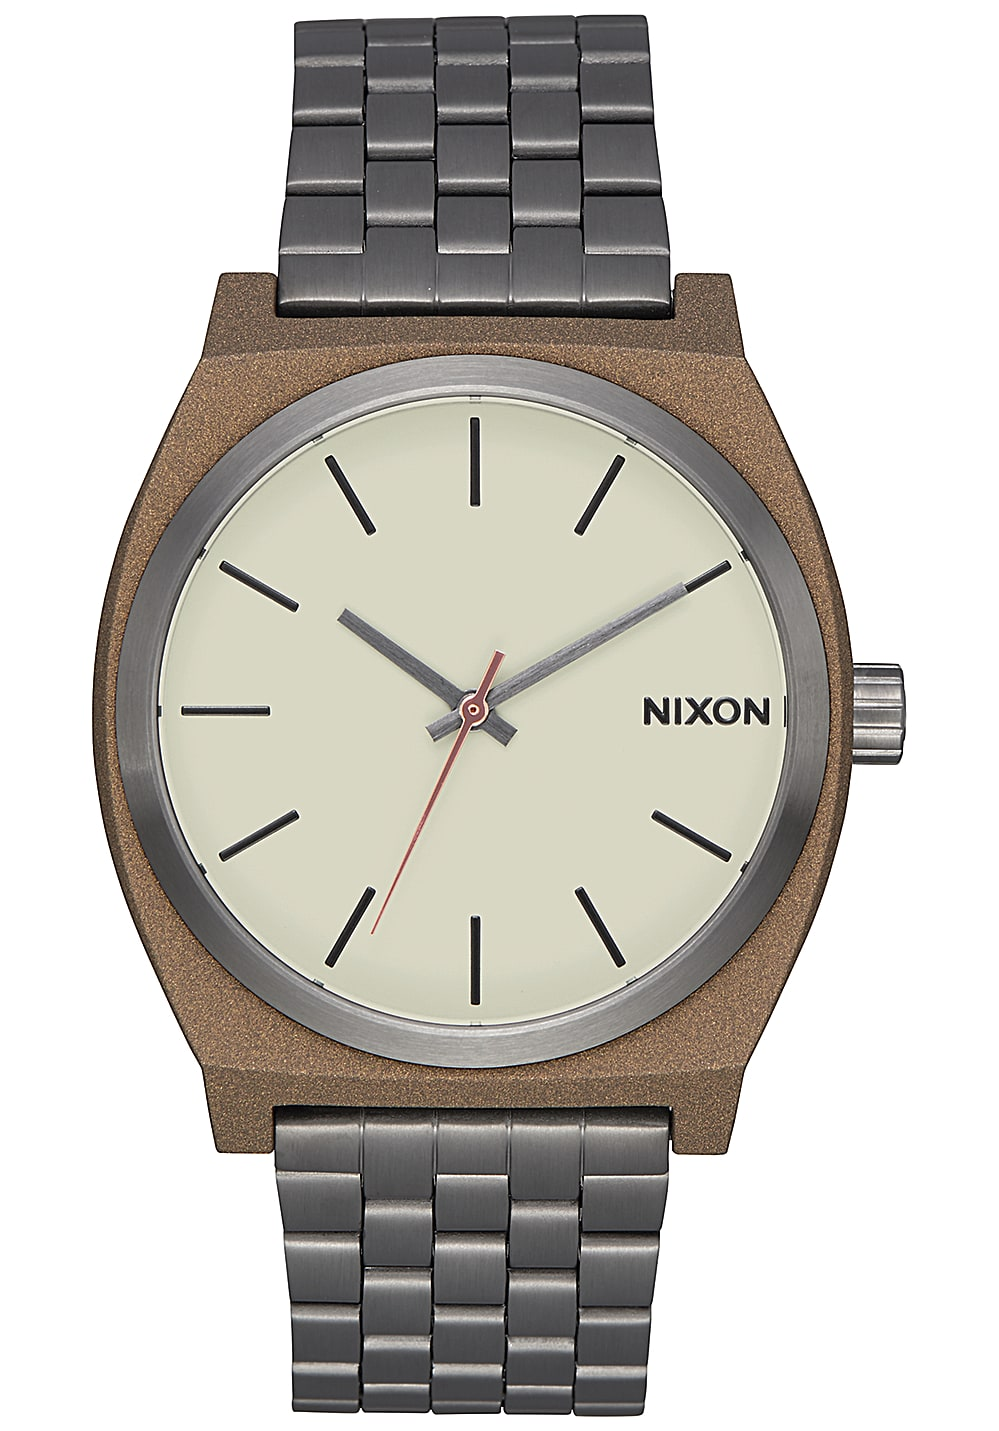 nixon time teller uhr f r herren grau planet sports. Black Bedroom Furniture Sets. Home Design Ideas